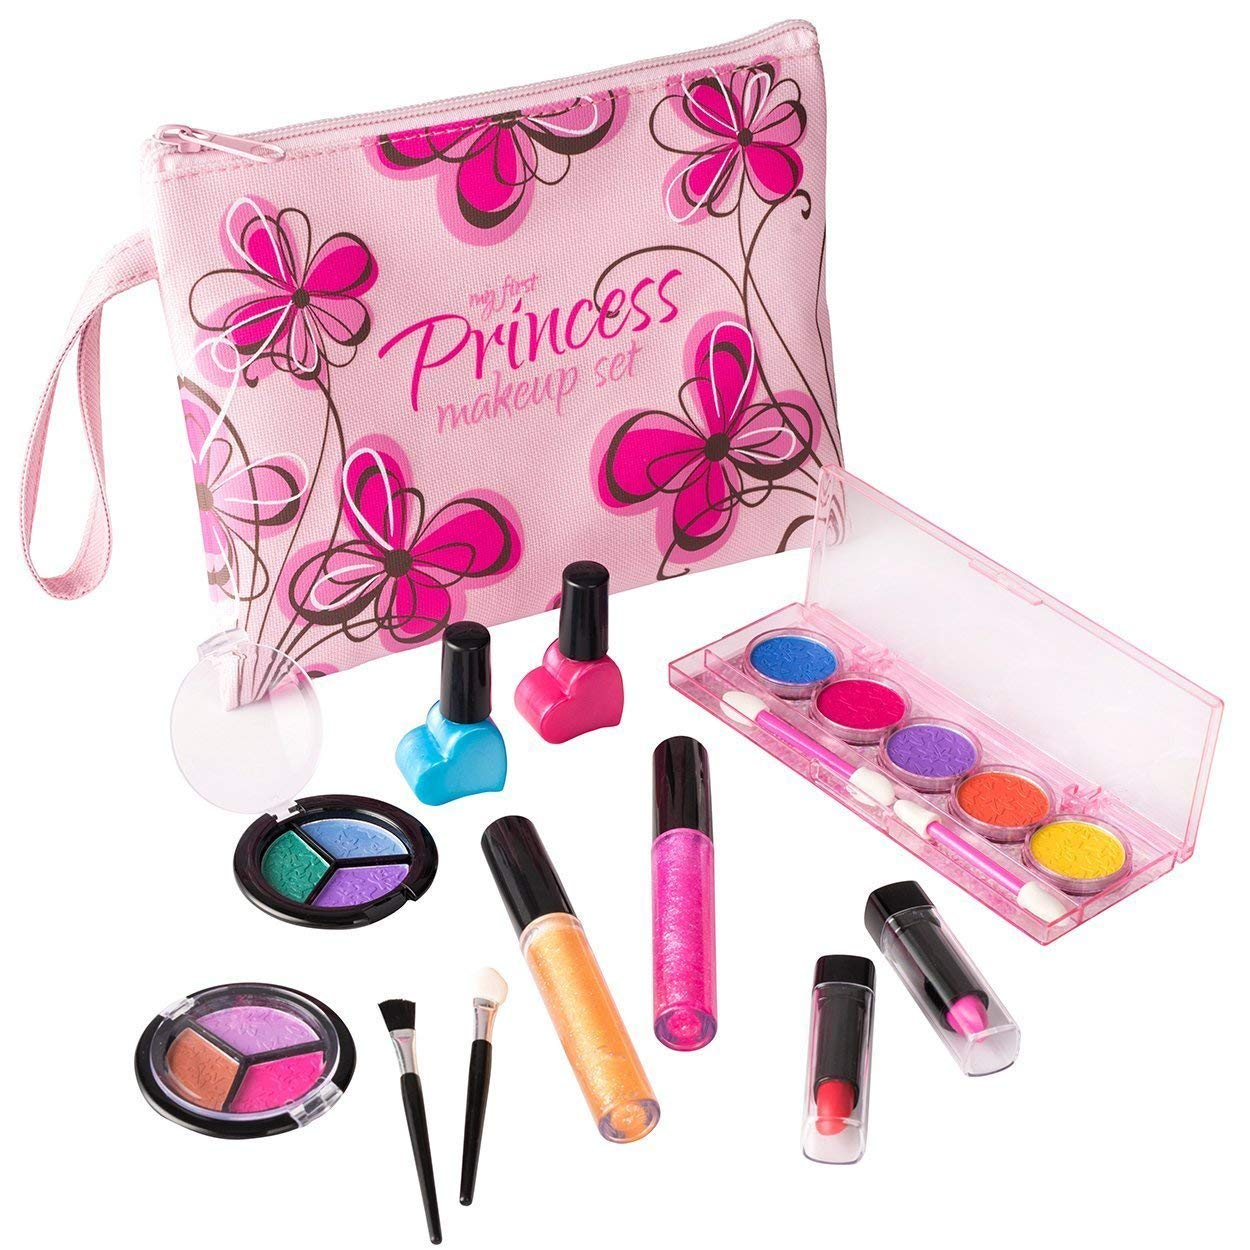 My First Princess Washable Real Makeup Set, with Designer Floral Cosmetic Bag by Playkidz